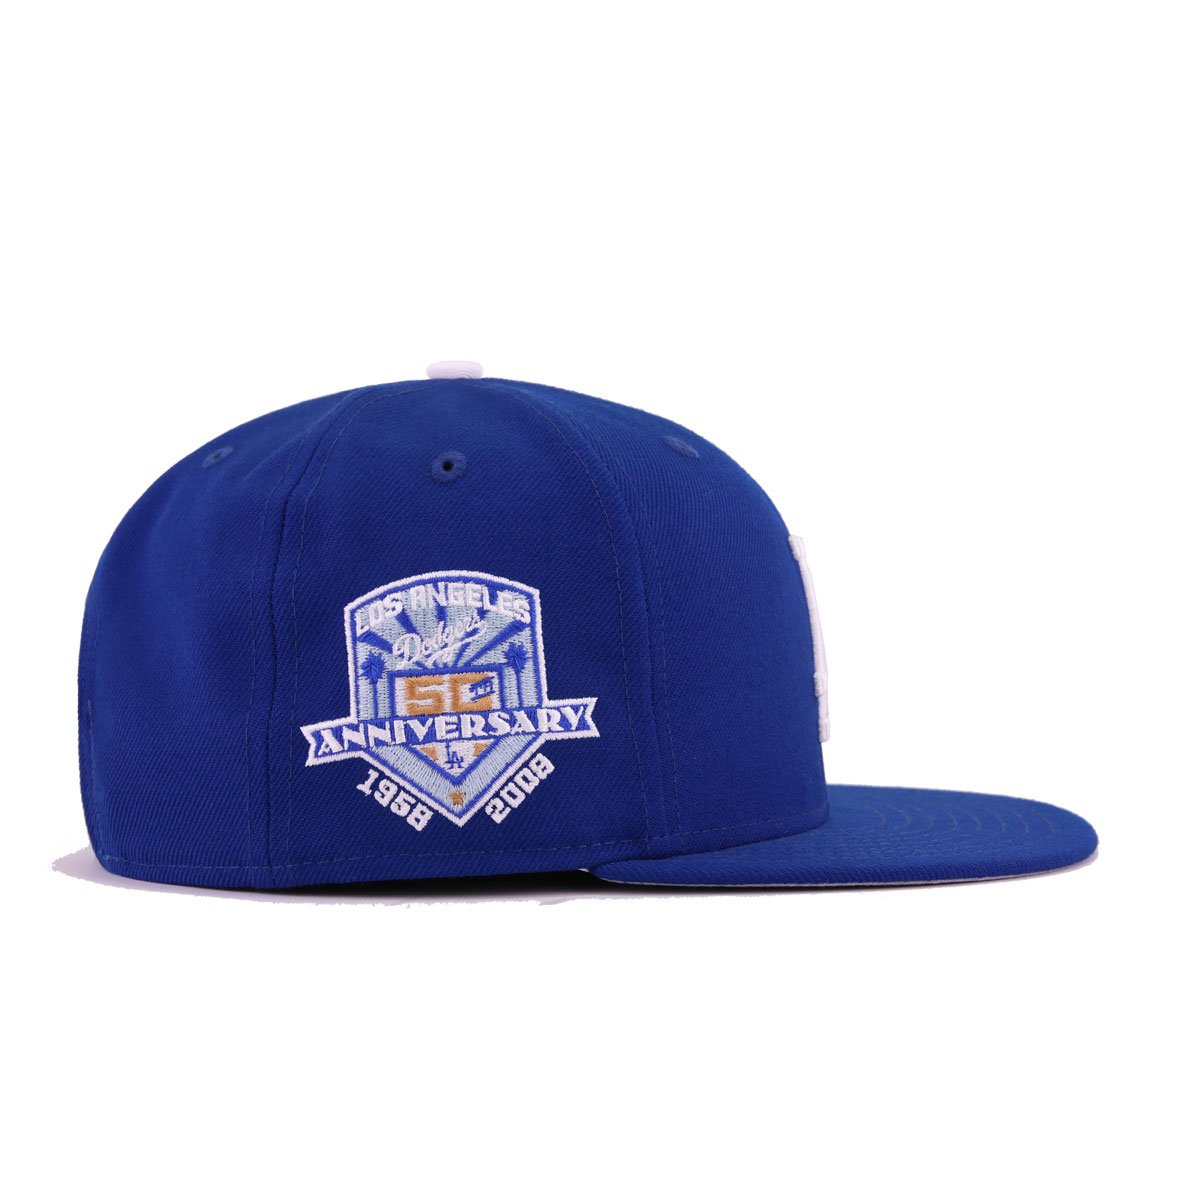 promo code 09a16 0890c ... netherlands los angeles dodgers light royal blue white 50th anniversary  new era 9fifty snapback 25202 8316d